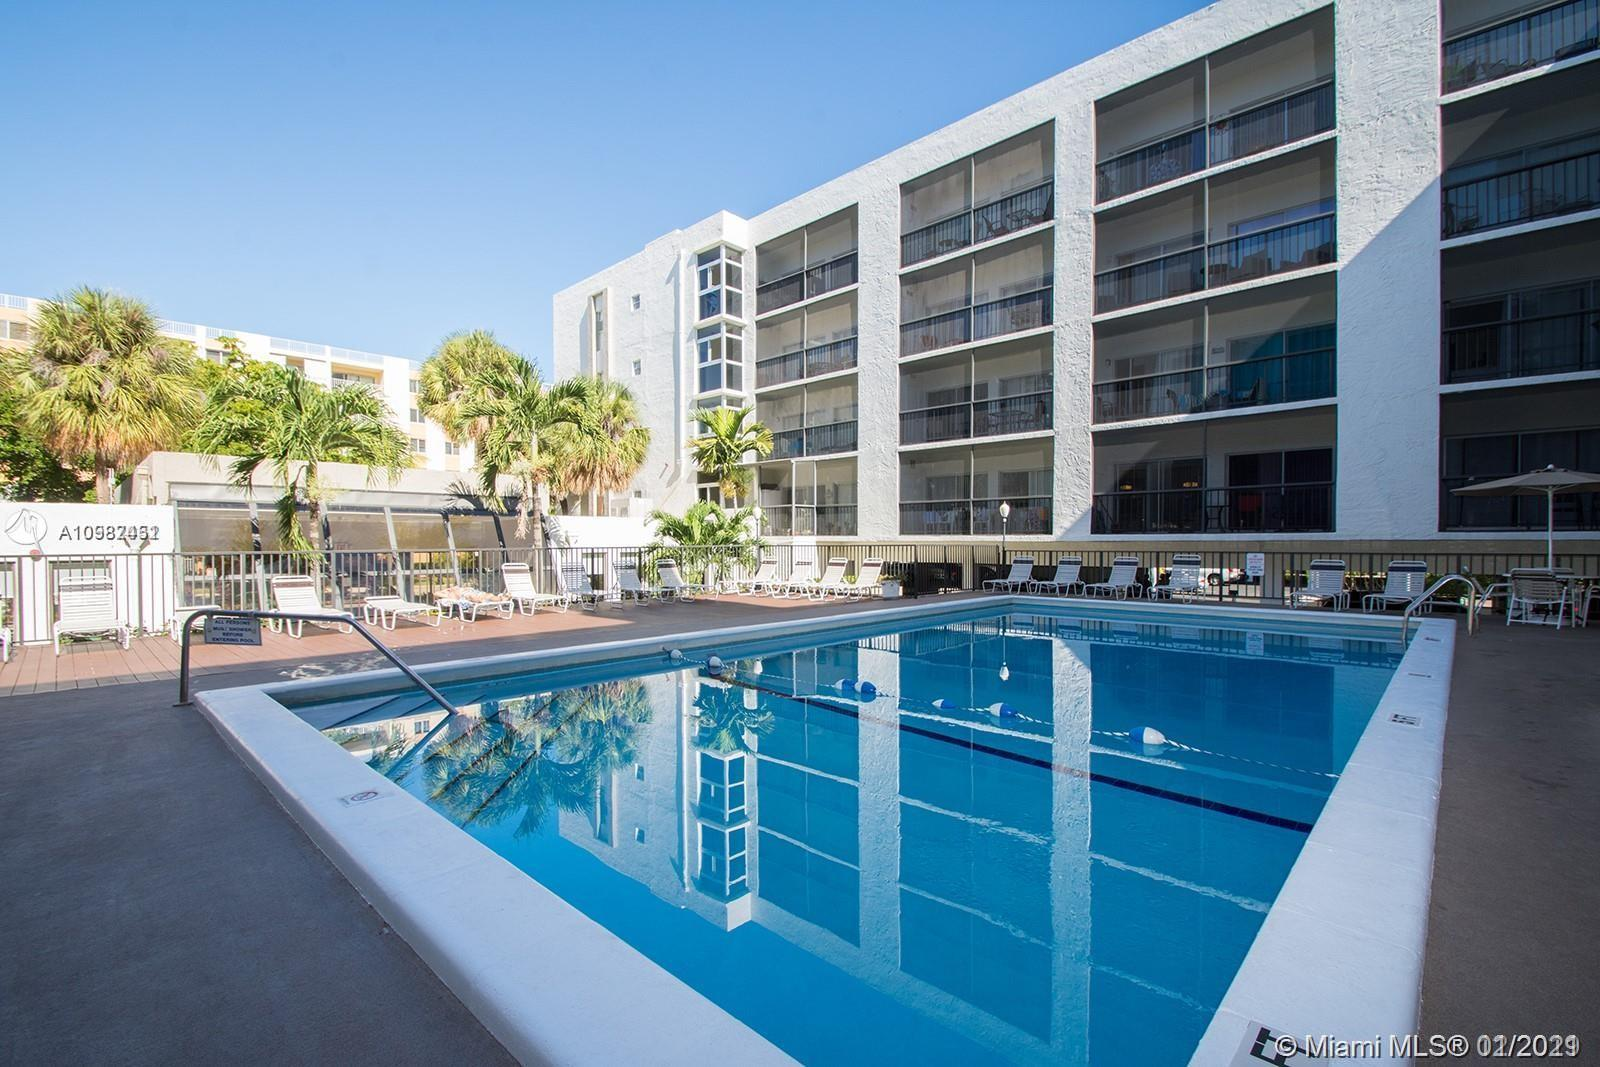 In the heart of Sunny Isles, unit with double balcony on the pool. Nice apartment in good condition.